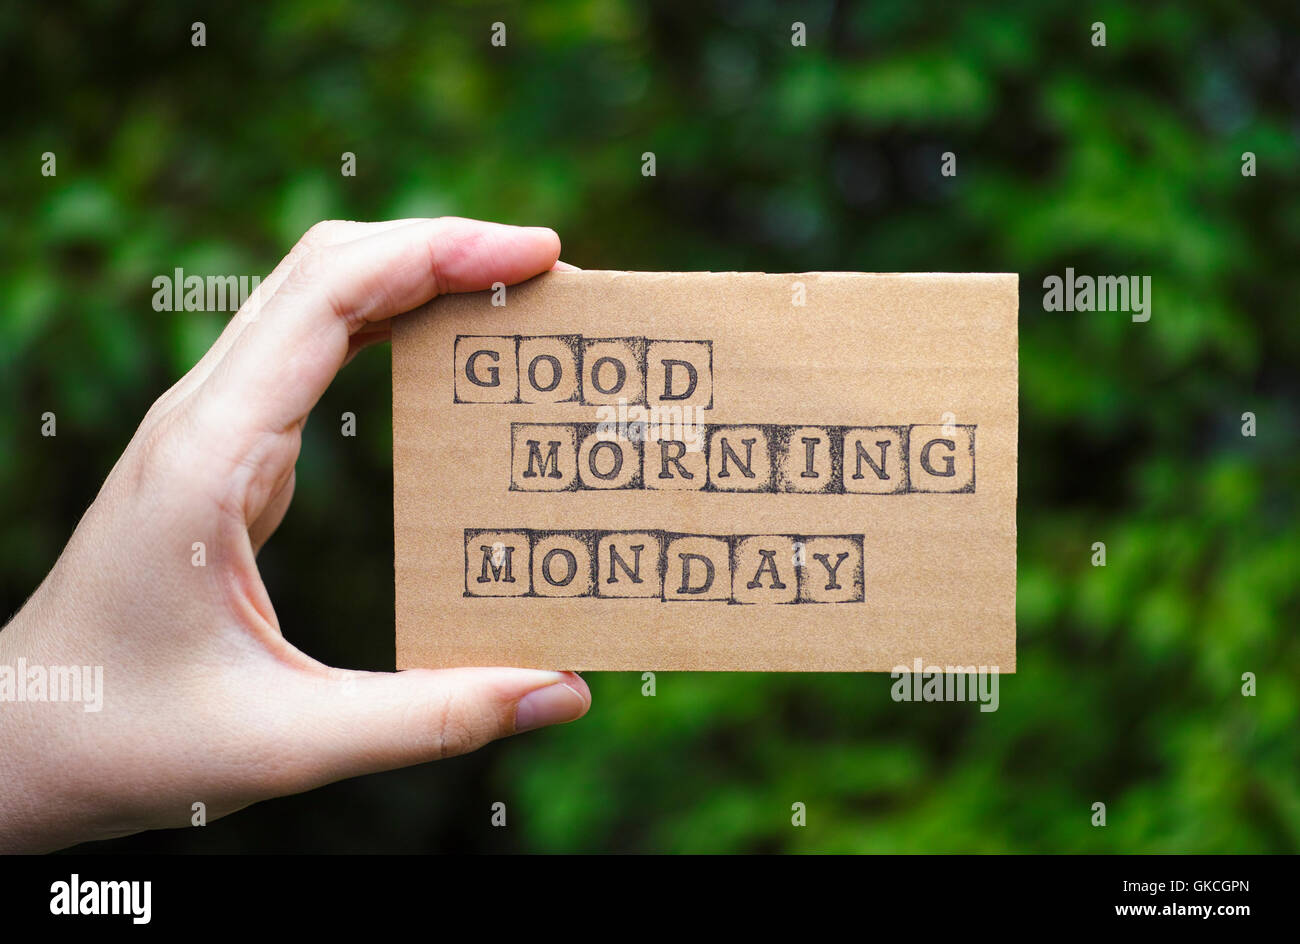 Woman Hand Holding Cardboard Card With Words Good Morning Monday